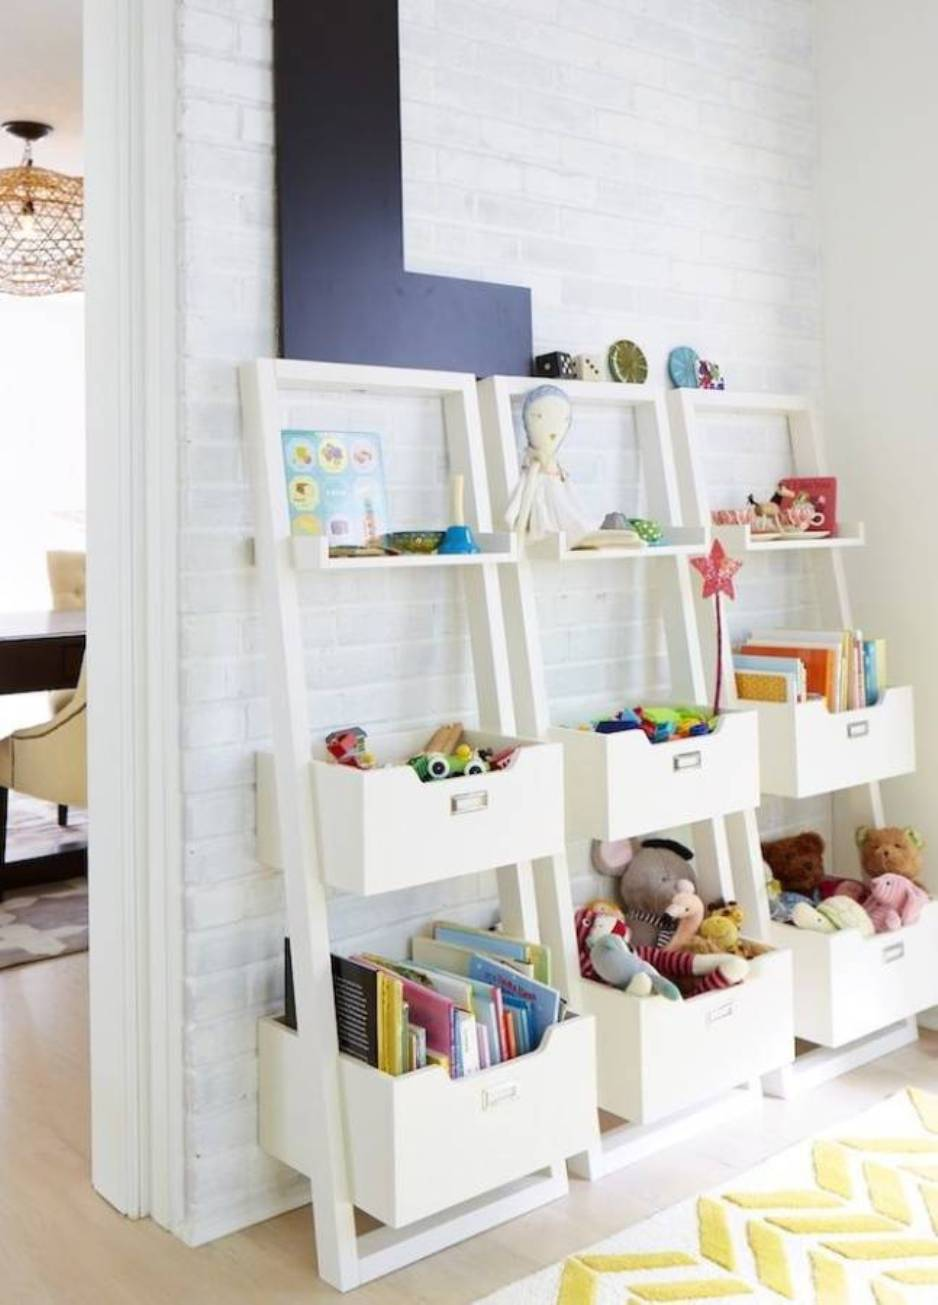 44 Best Toy Storage Ideas that Kids Will Love in 2018